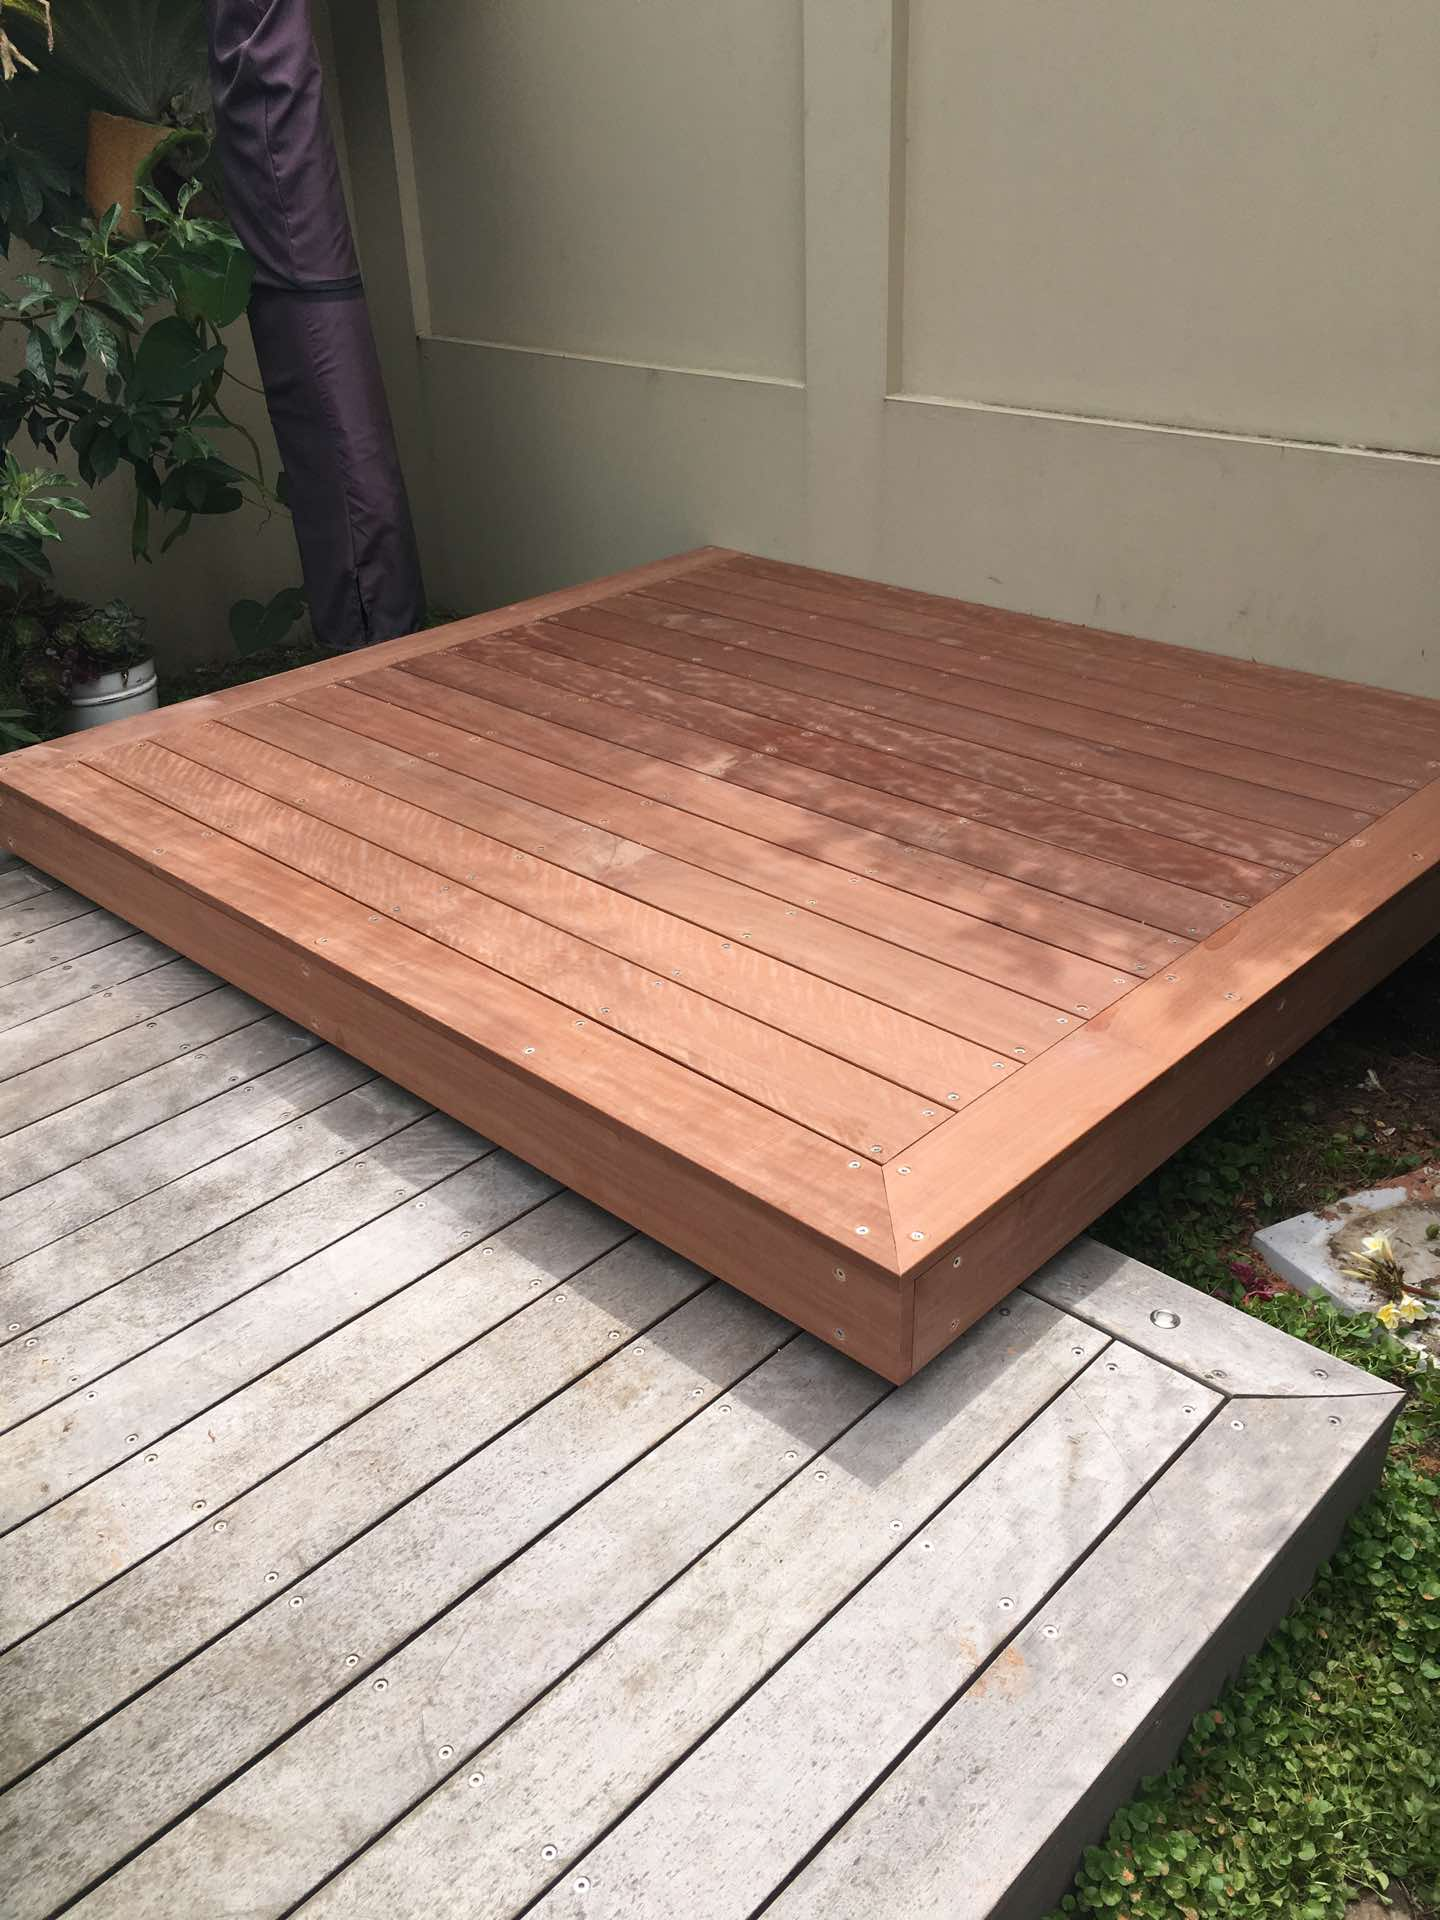 Floating deck over existing deck that has been allowed to age and weather Manly, NSW